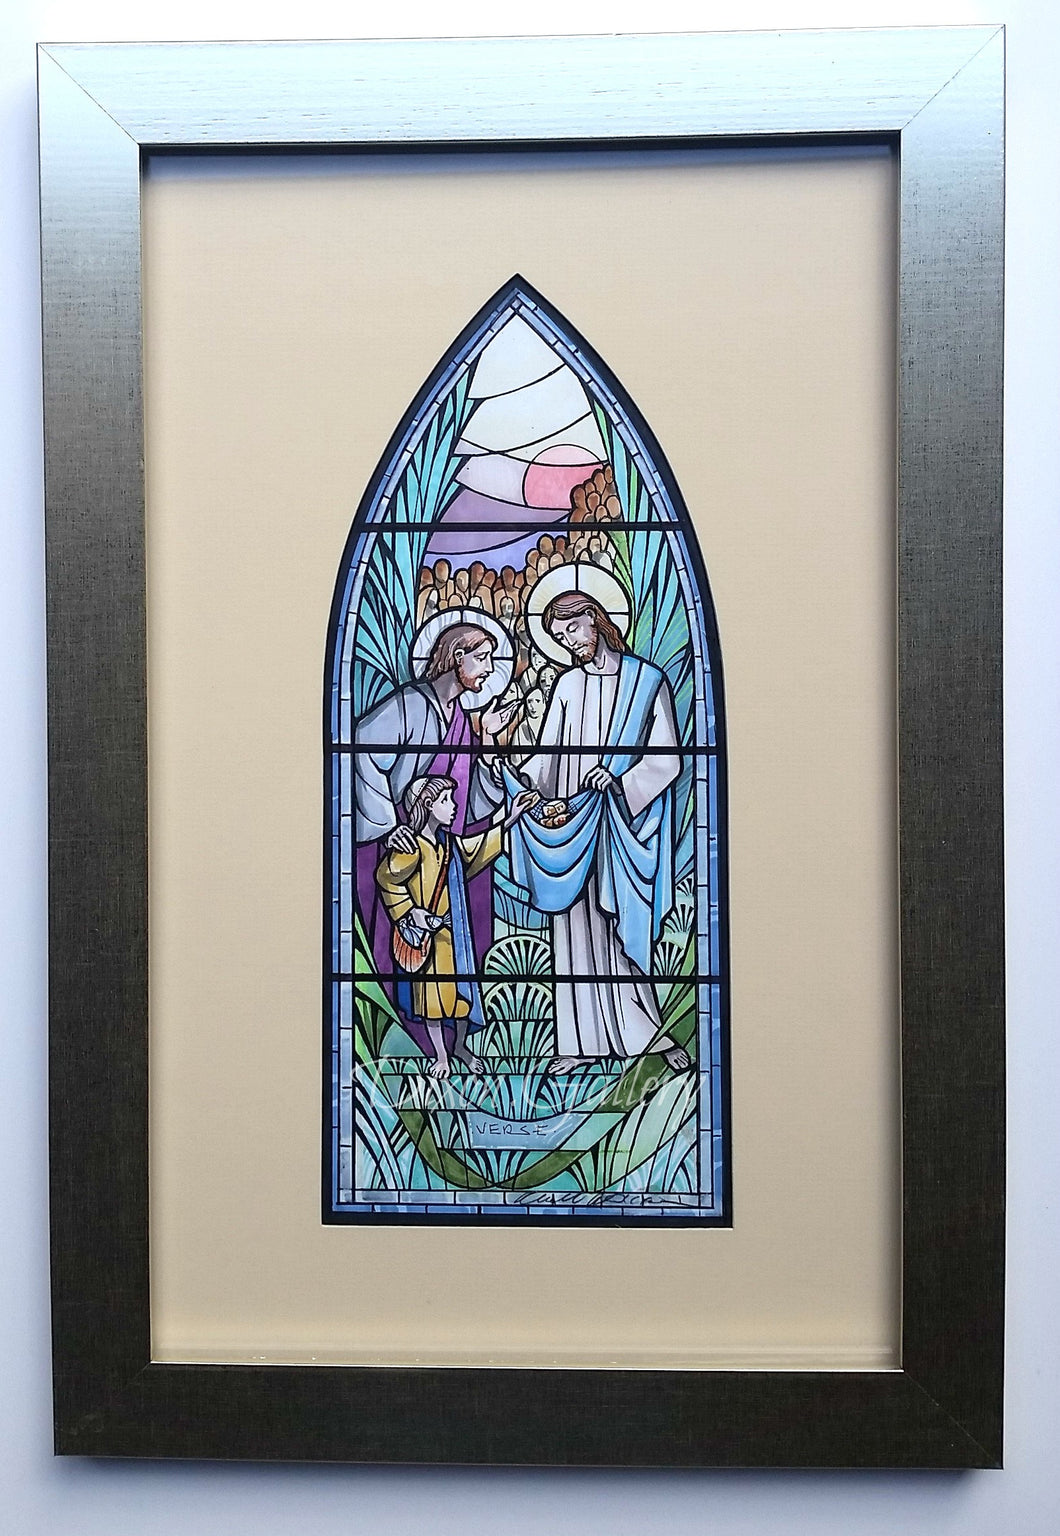 Feeding the Multitudes - original design, framed